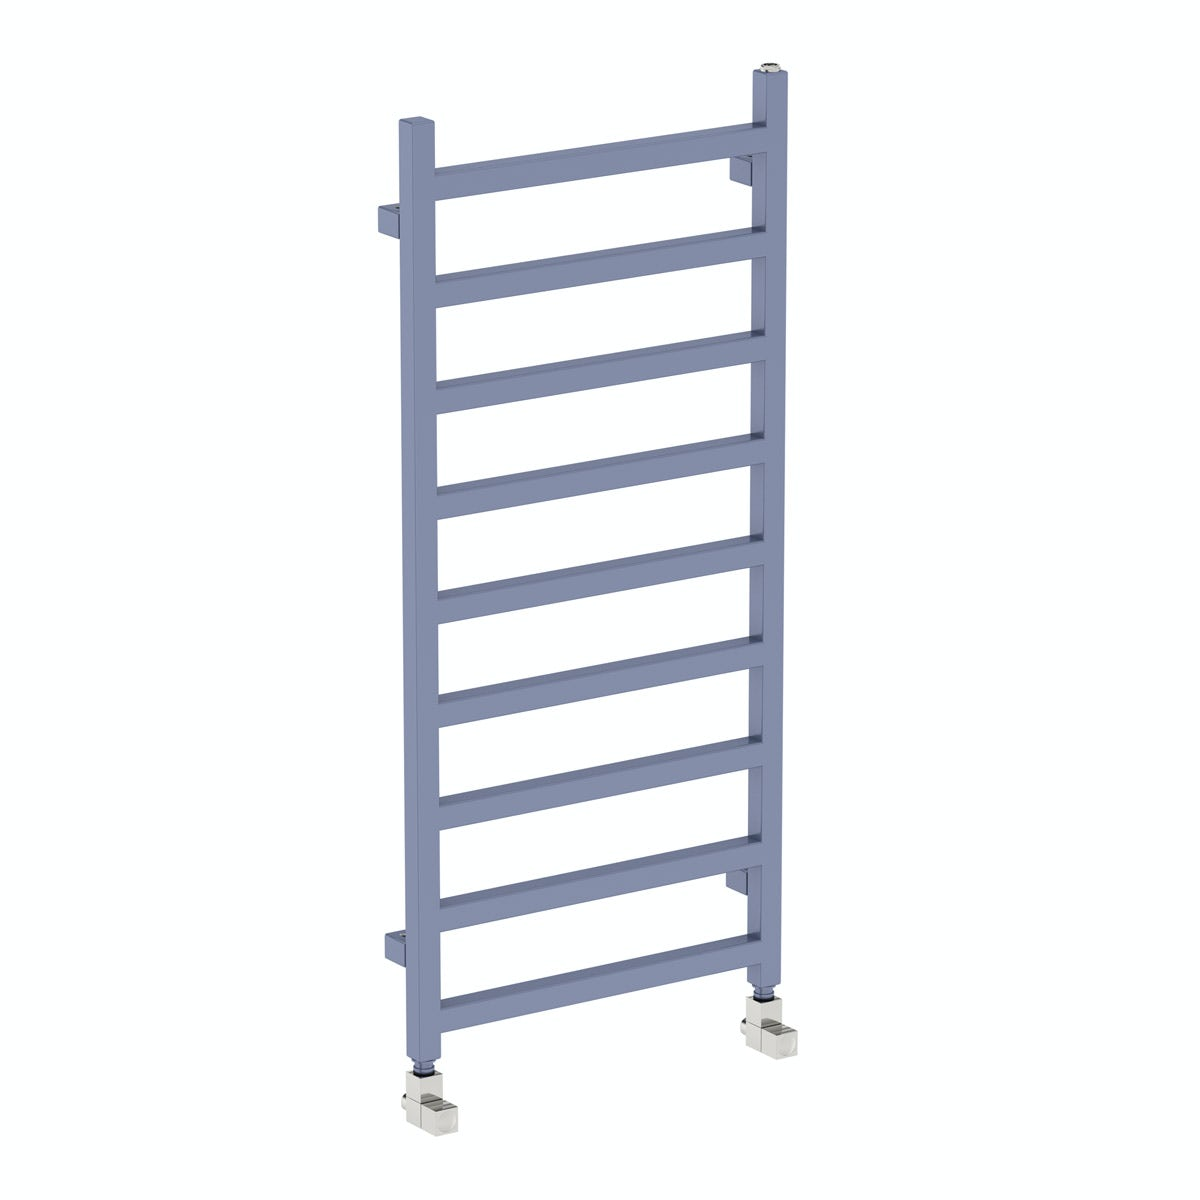 Terma Simple pigeon blue heated towel rail 1080 x 500